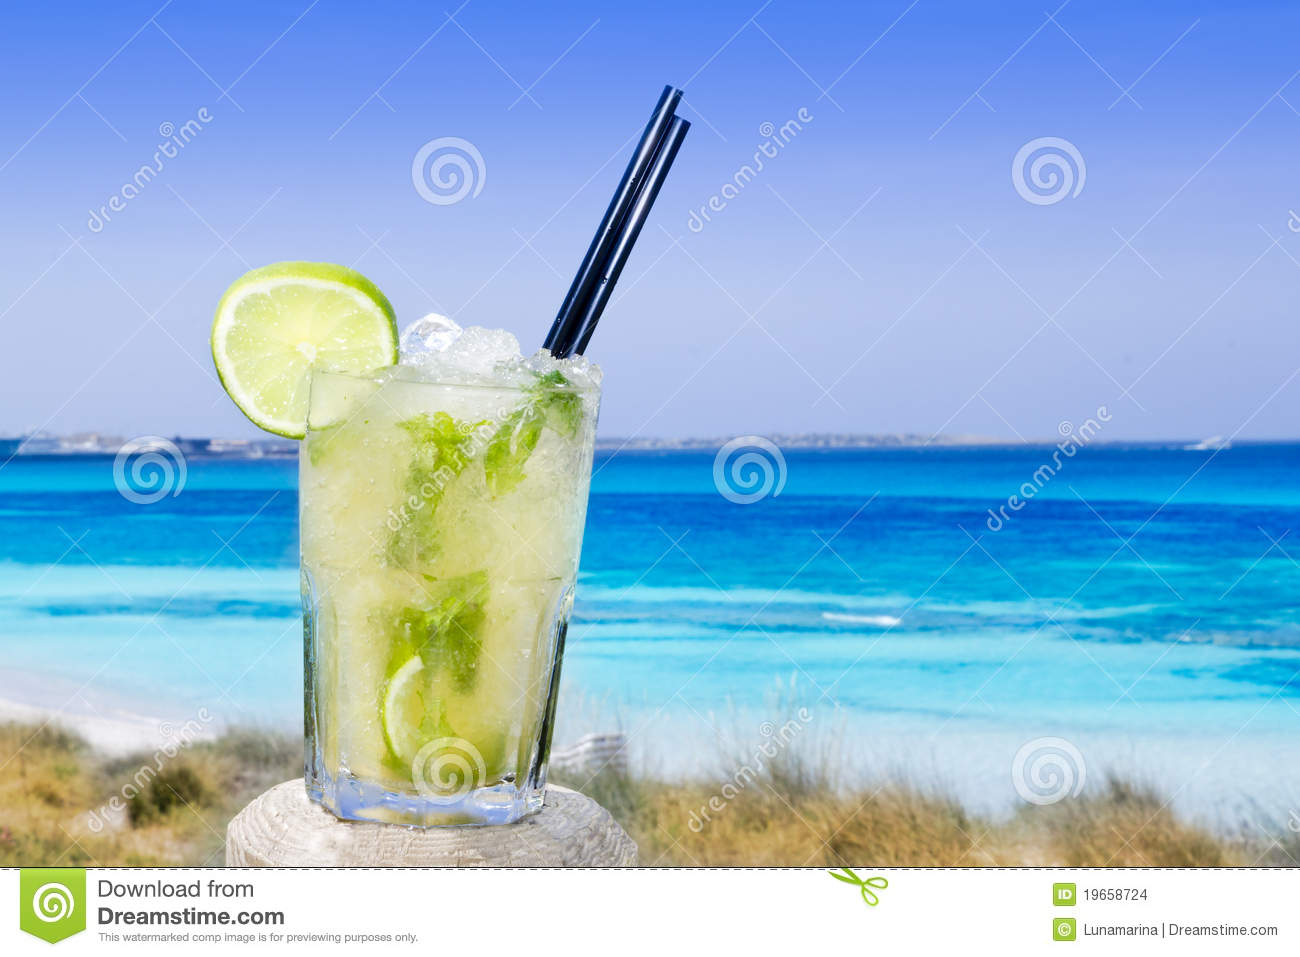 Cocktail mojito ice lemon straws in tropical beach balearic Islands.